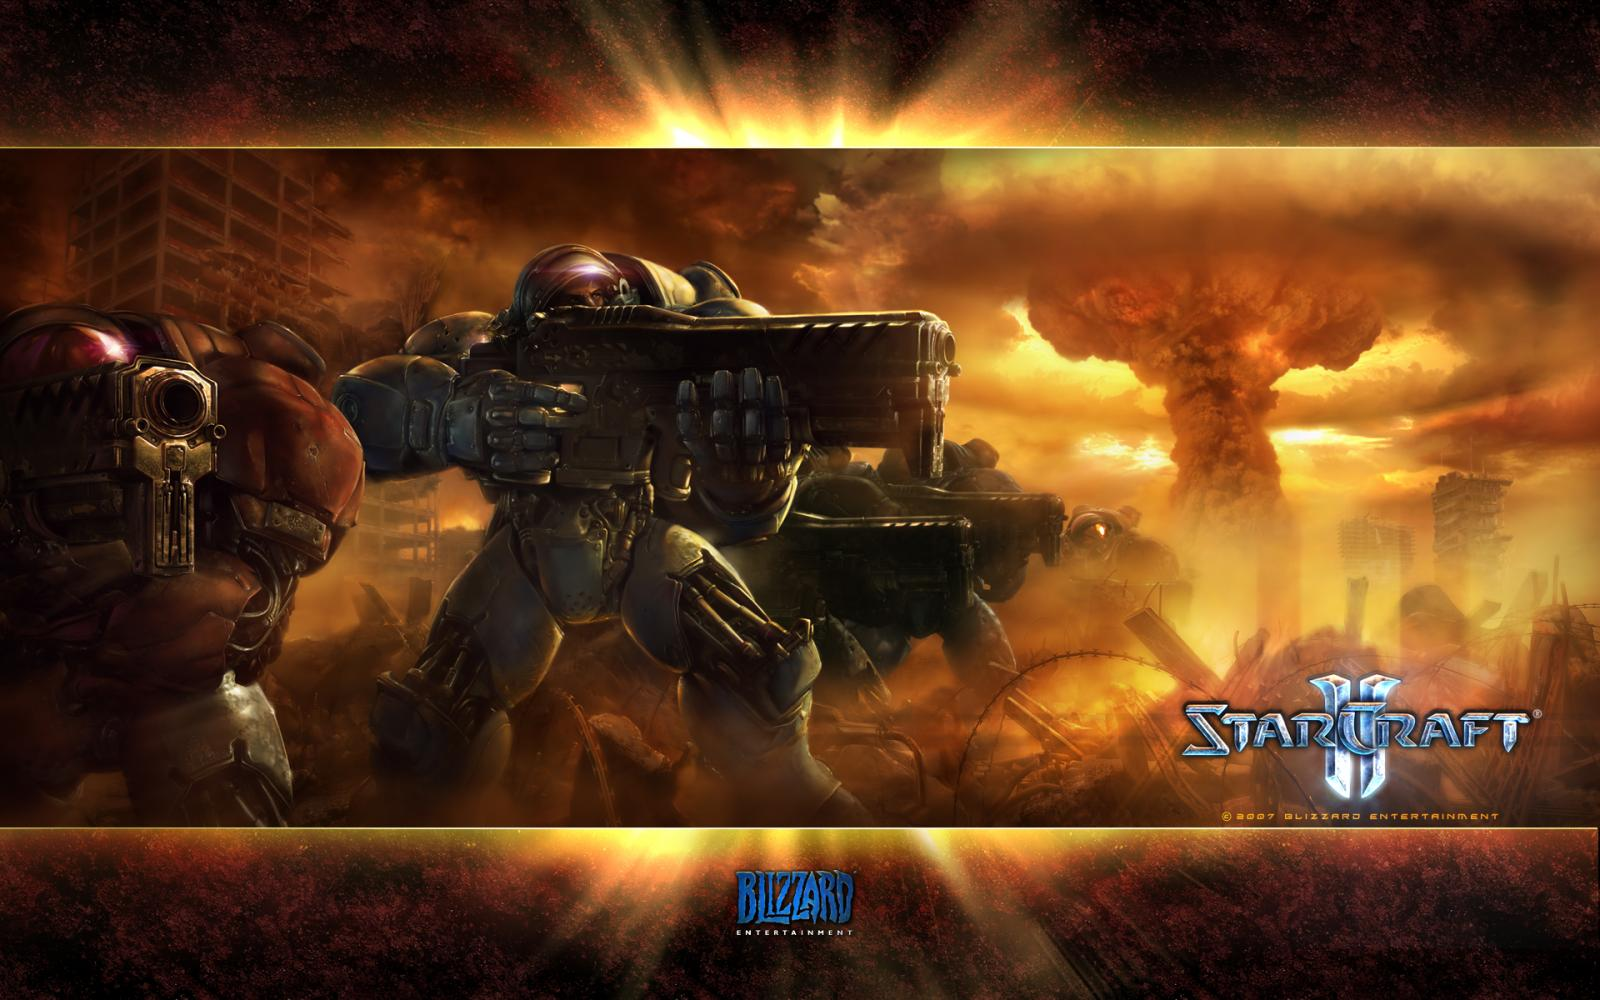 Wallpaper StarCraft 2 Frappe nucleaire Jeux video